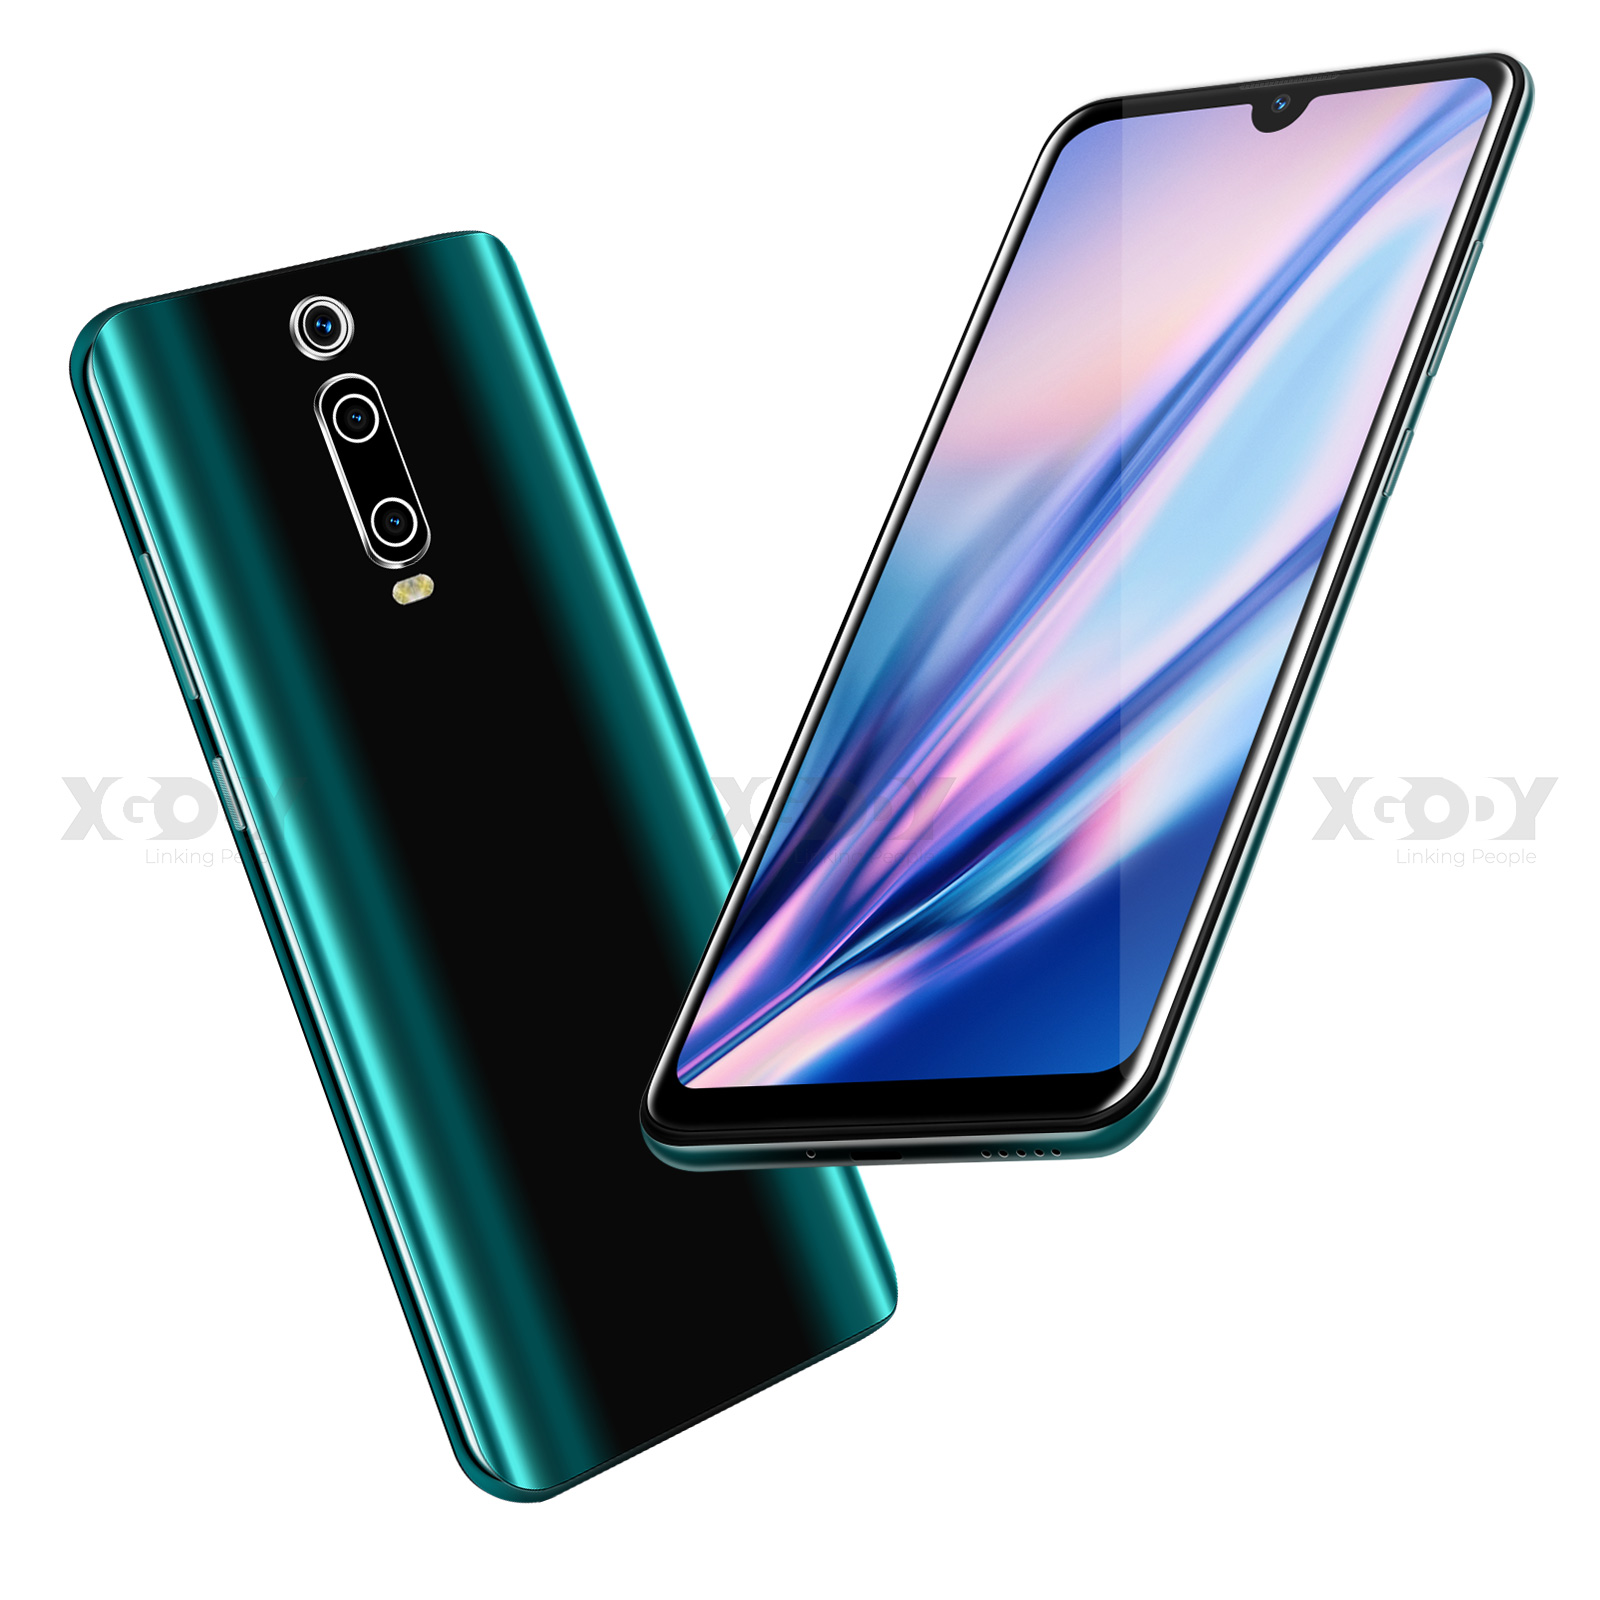 XGODY 6.26'' Waterdrop Mobile Phone 9T Android 9.0 1GB 4GB Full Screen Smartphone MTK6580 Quad Core 2800mAh 5MP WiFi Cell Phones